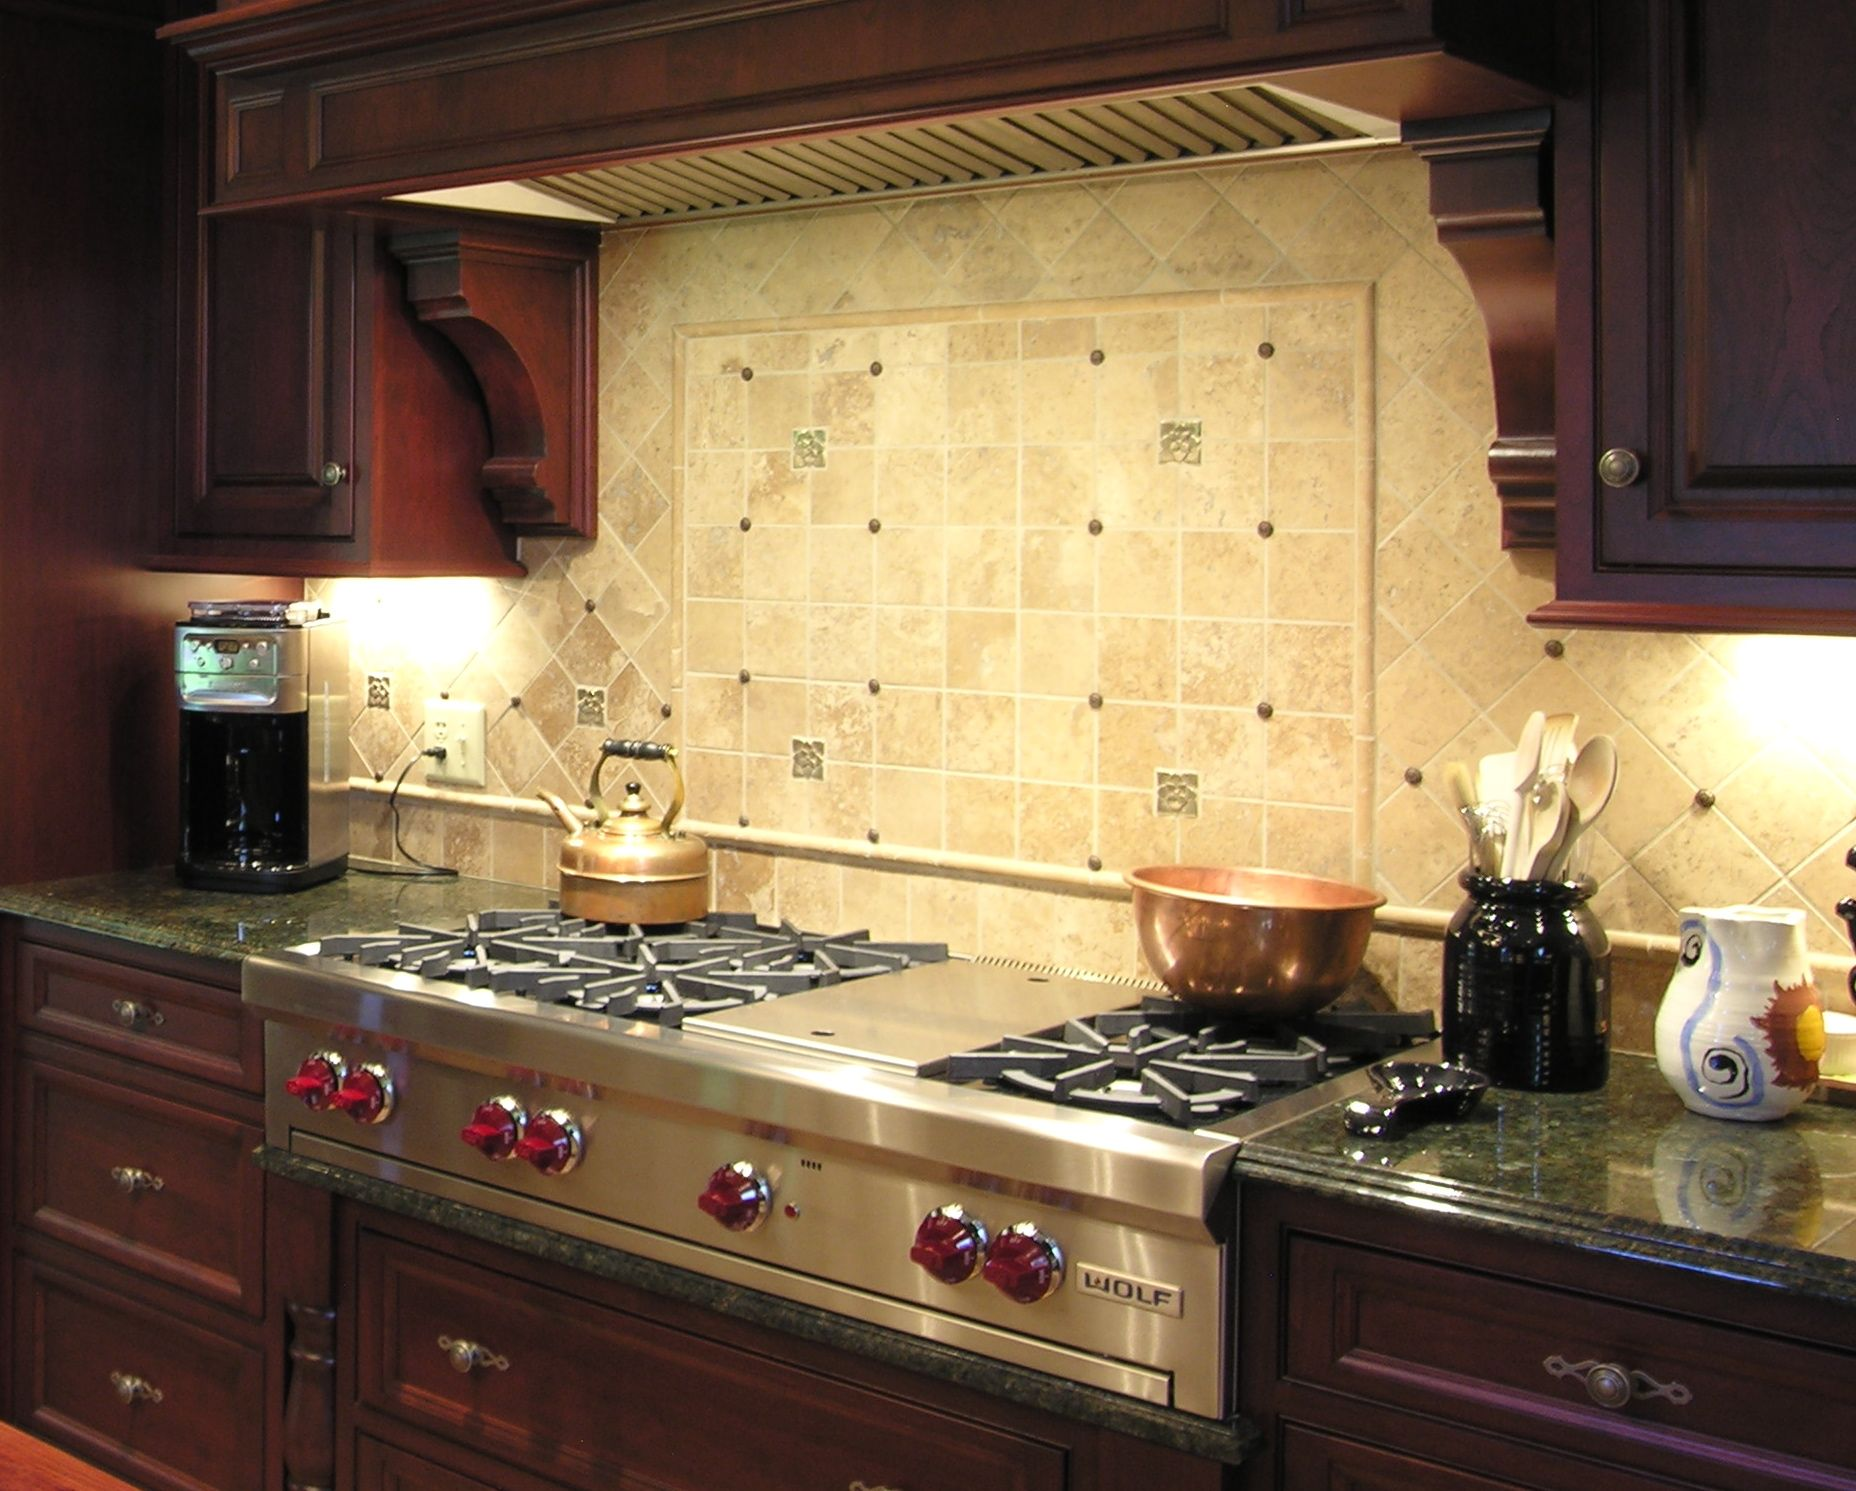 Without The Backsplash This Kitchen Would Still Have A Very Classic And  Elegant Style With Its